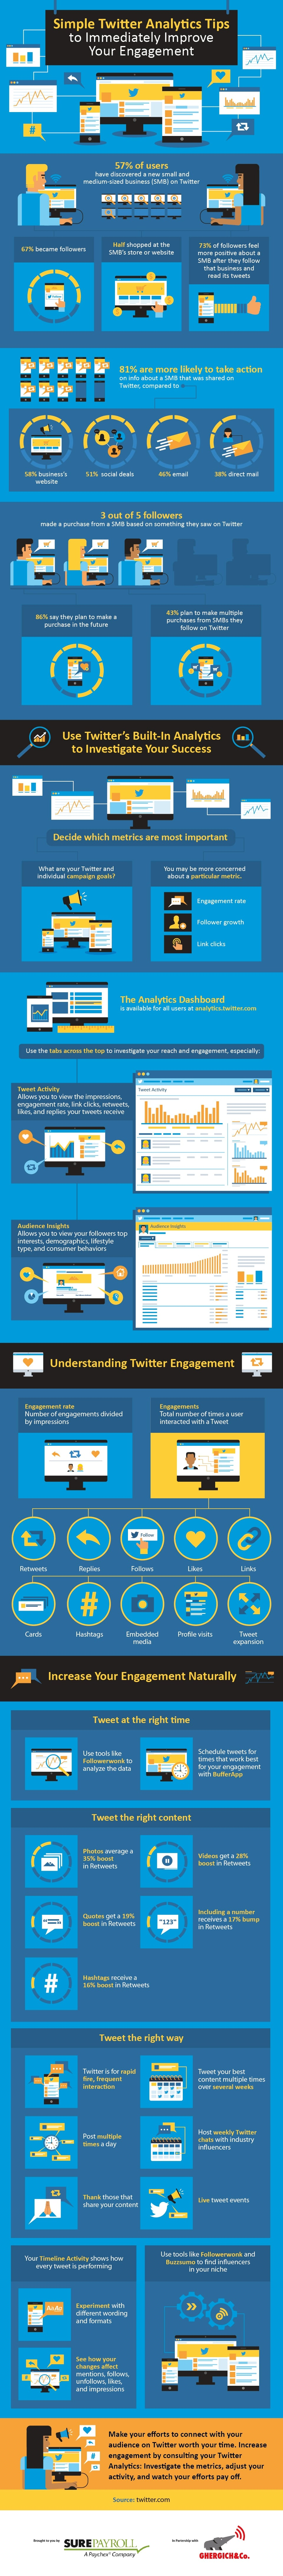 simple-twitter-analytics-tips_infographic